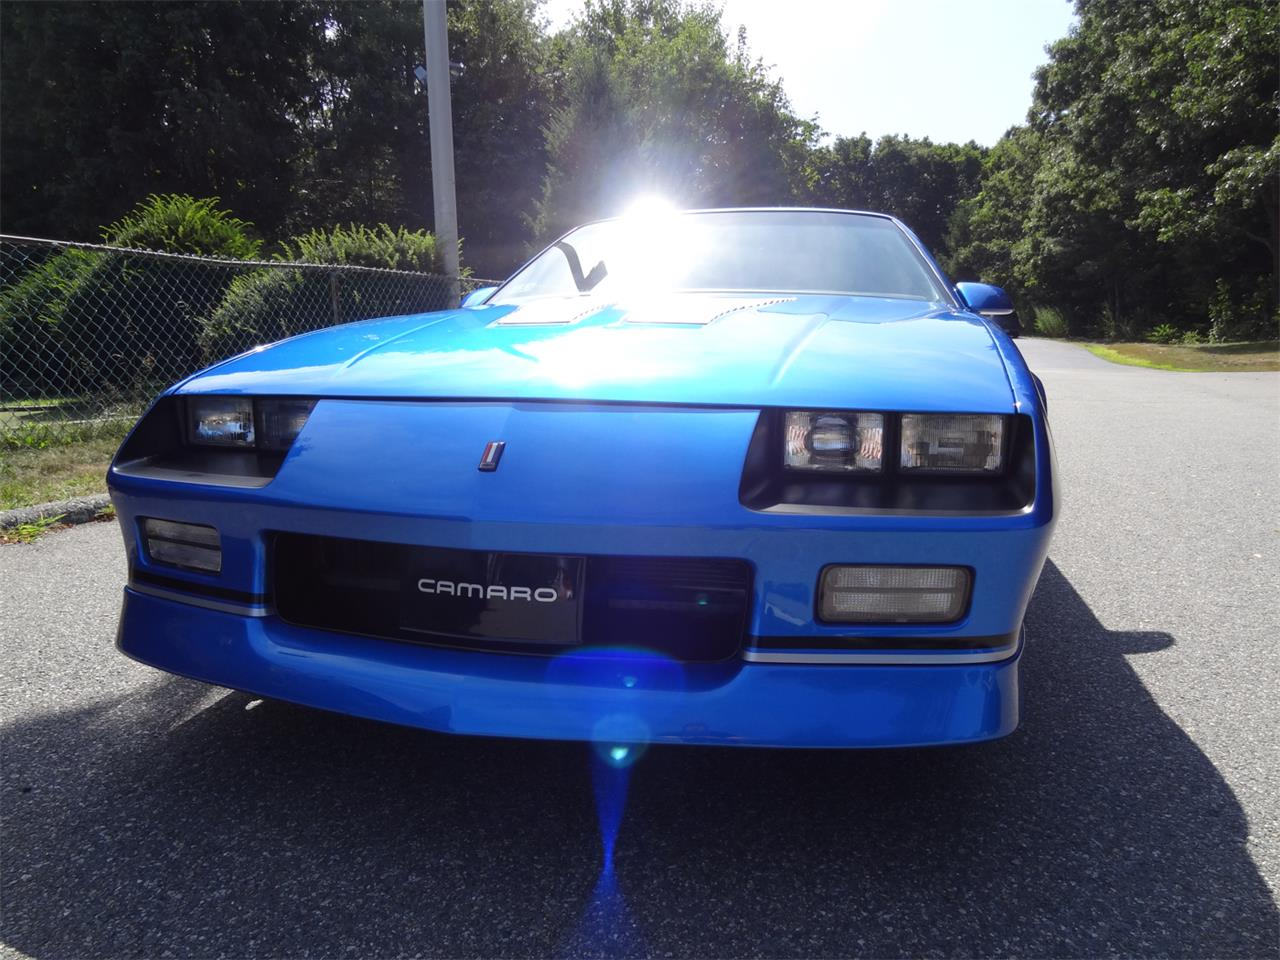 Large Picture of 1983 Camaro IROC Z28 located in Massachusetts Offered by a Private Seller - QUEA